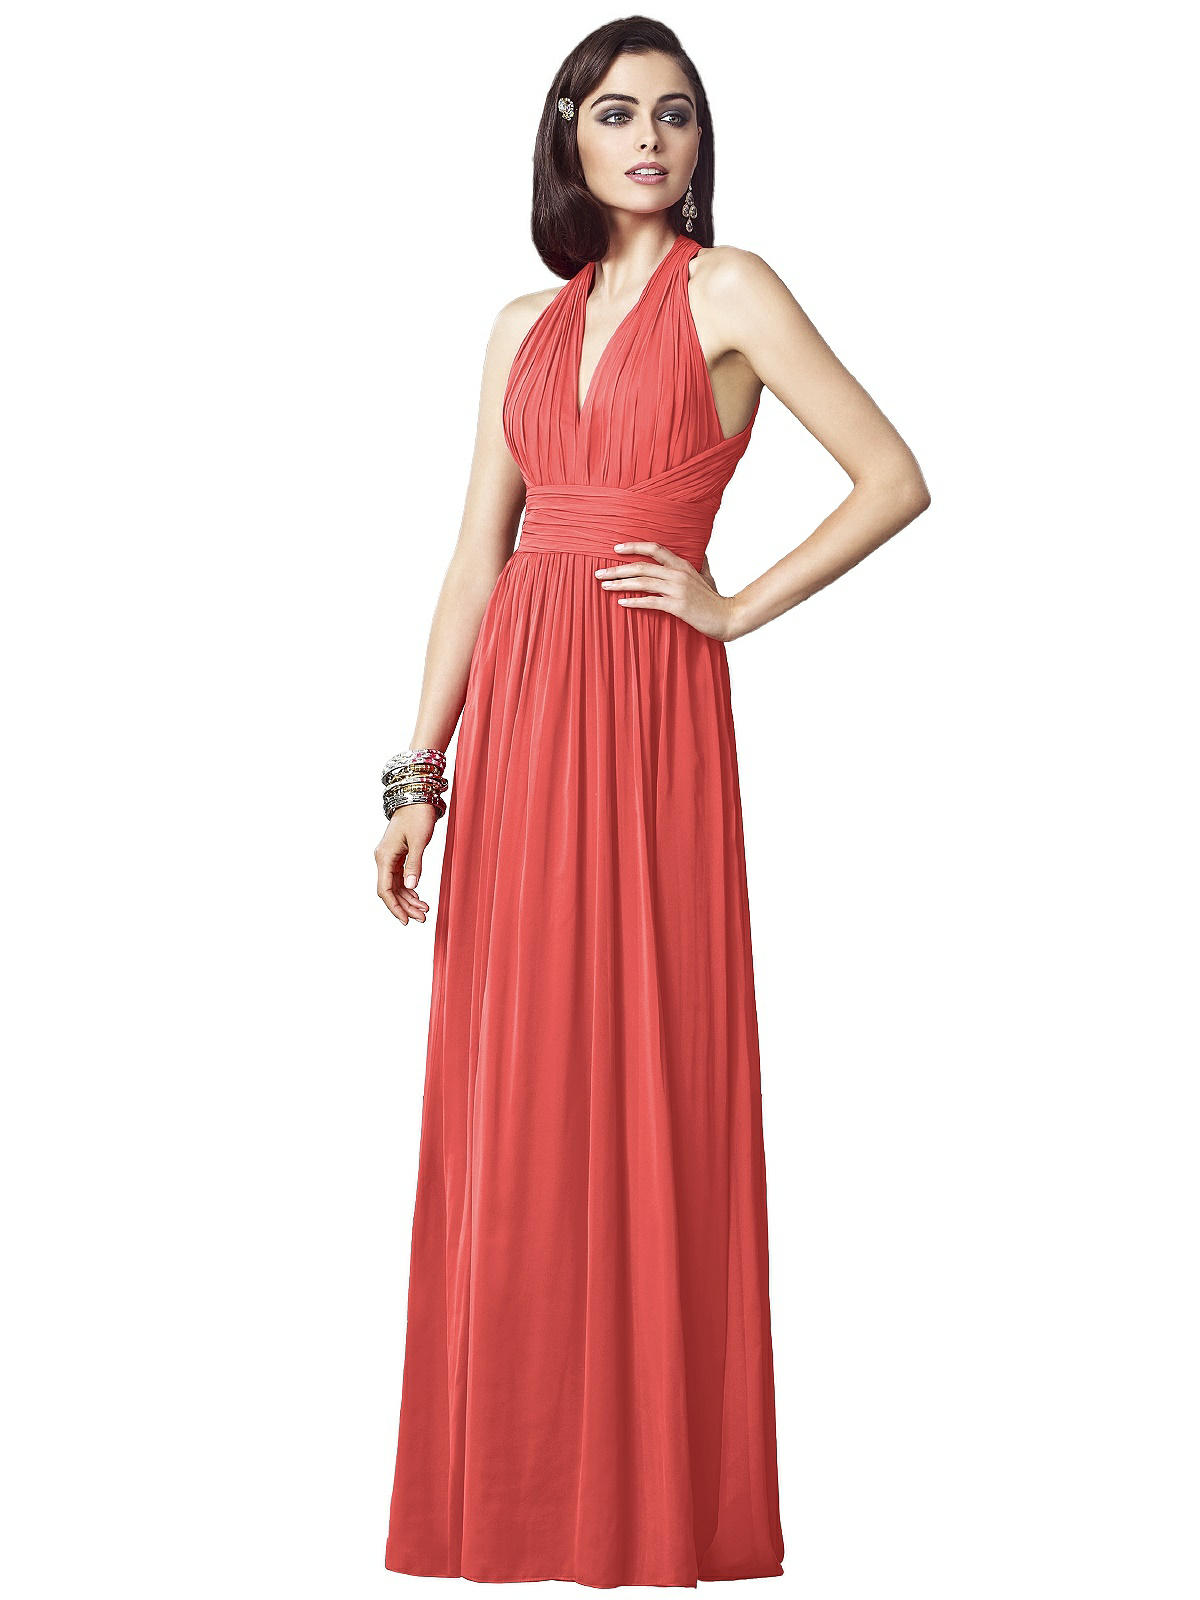 Special Order Dessy Collection coral bridesmaid dresses